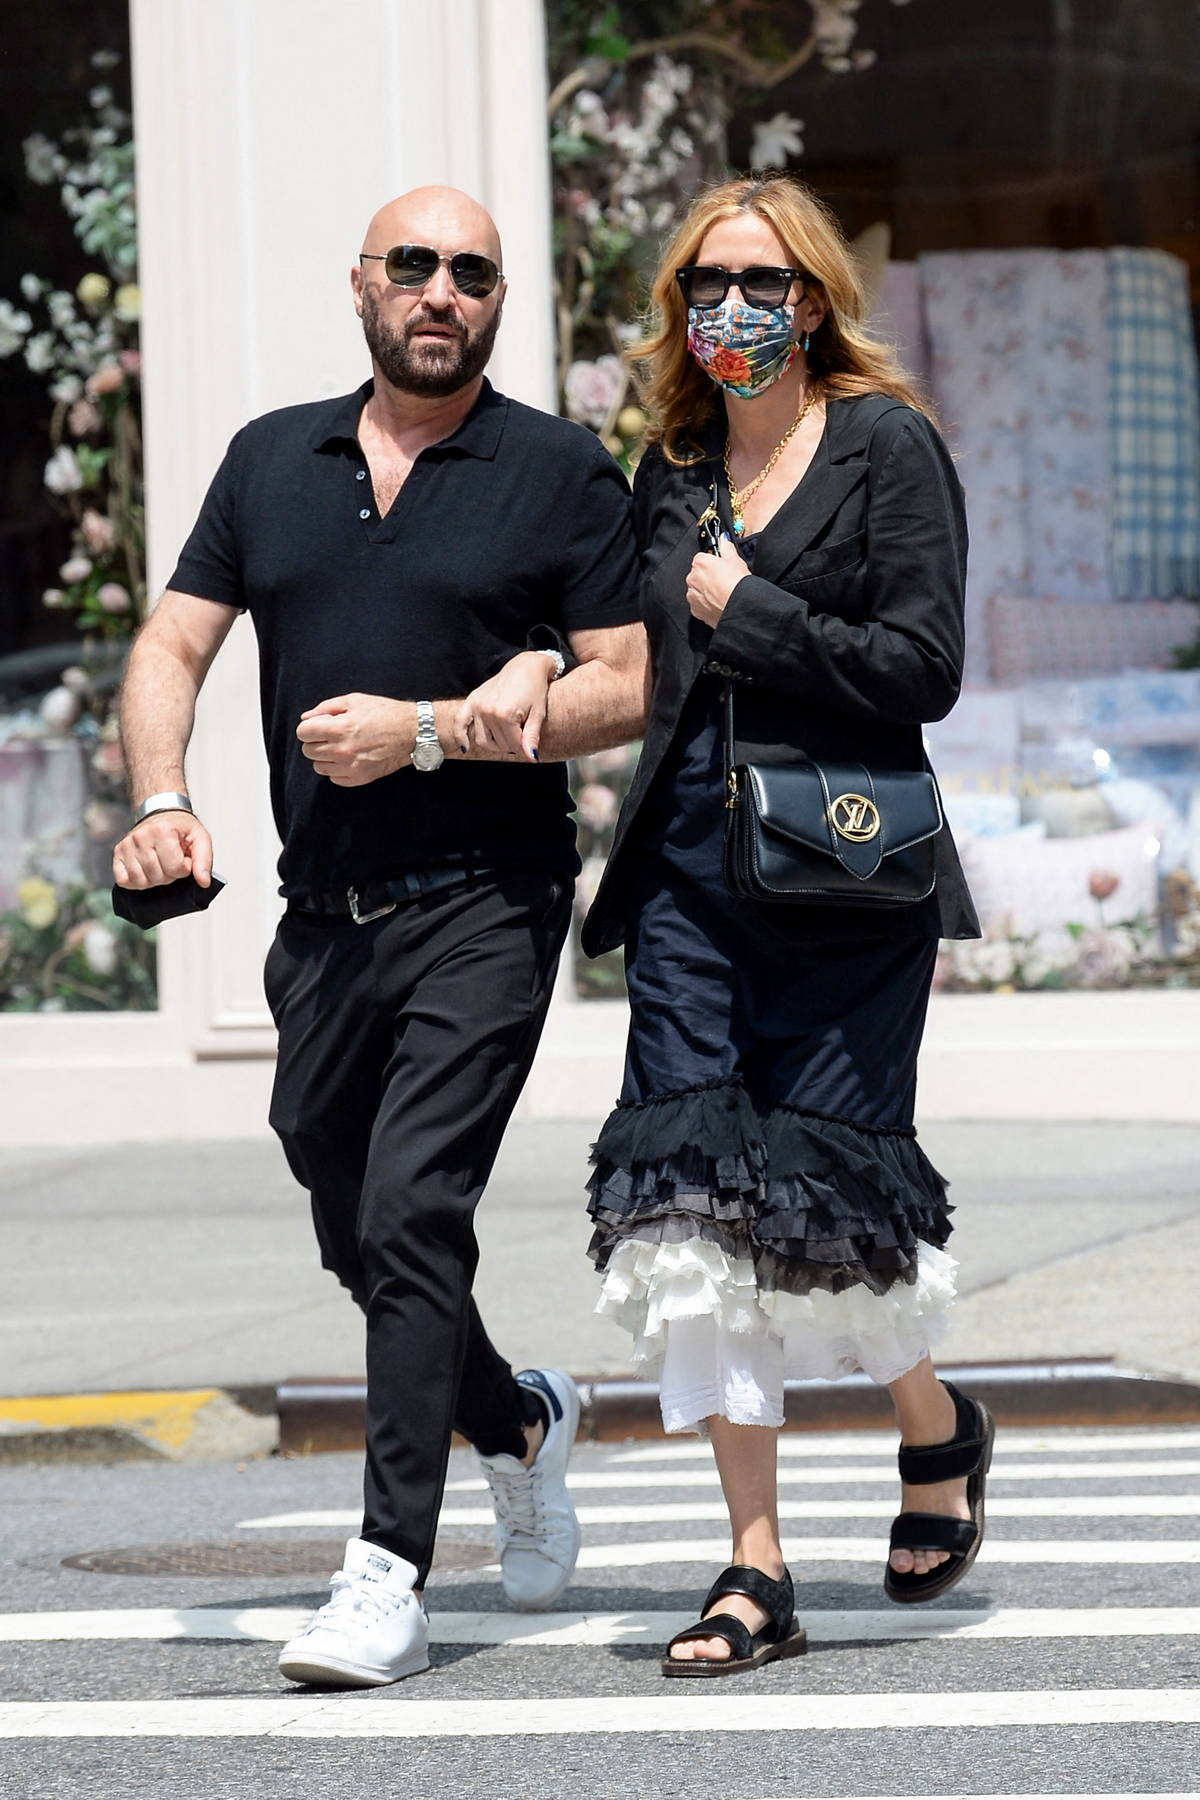 Julia Roberts walks arm in arm with her friend and hairstylist Serge Normant while out for a stroll in New York City